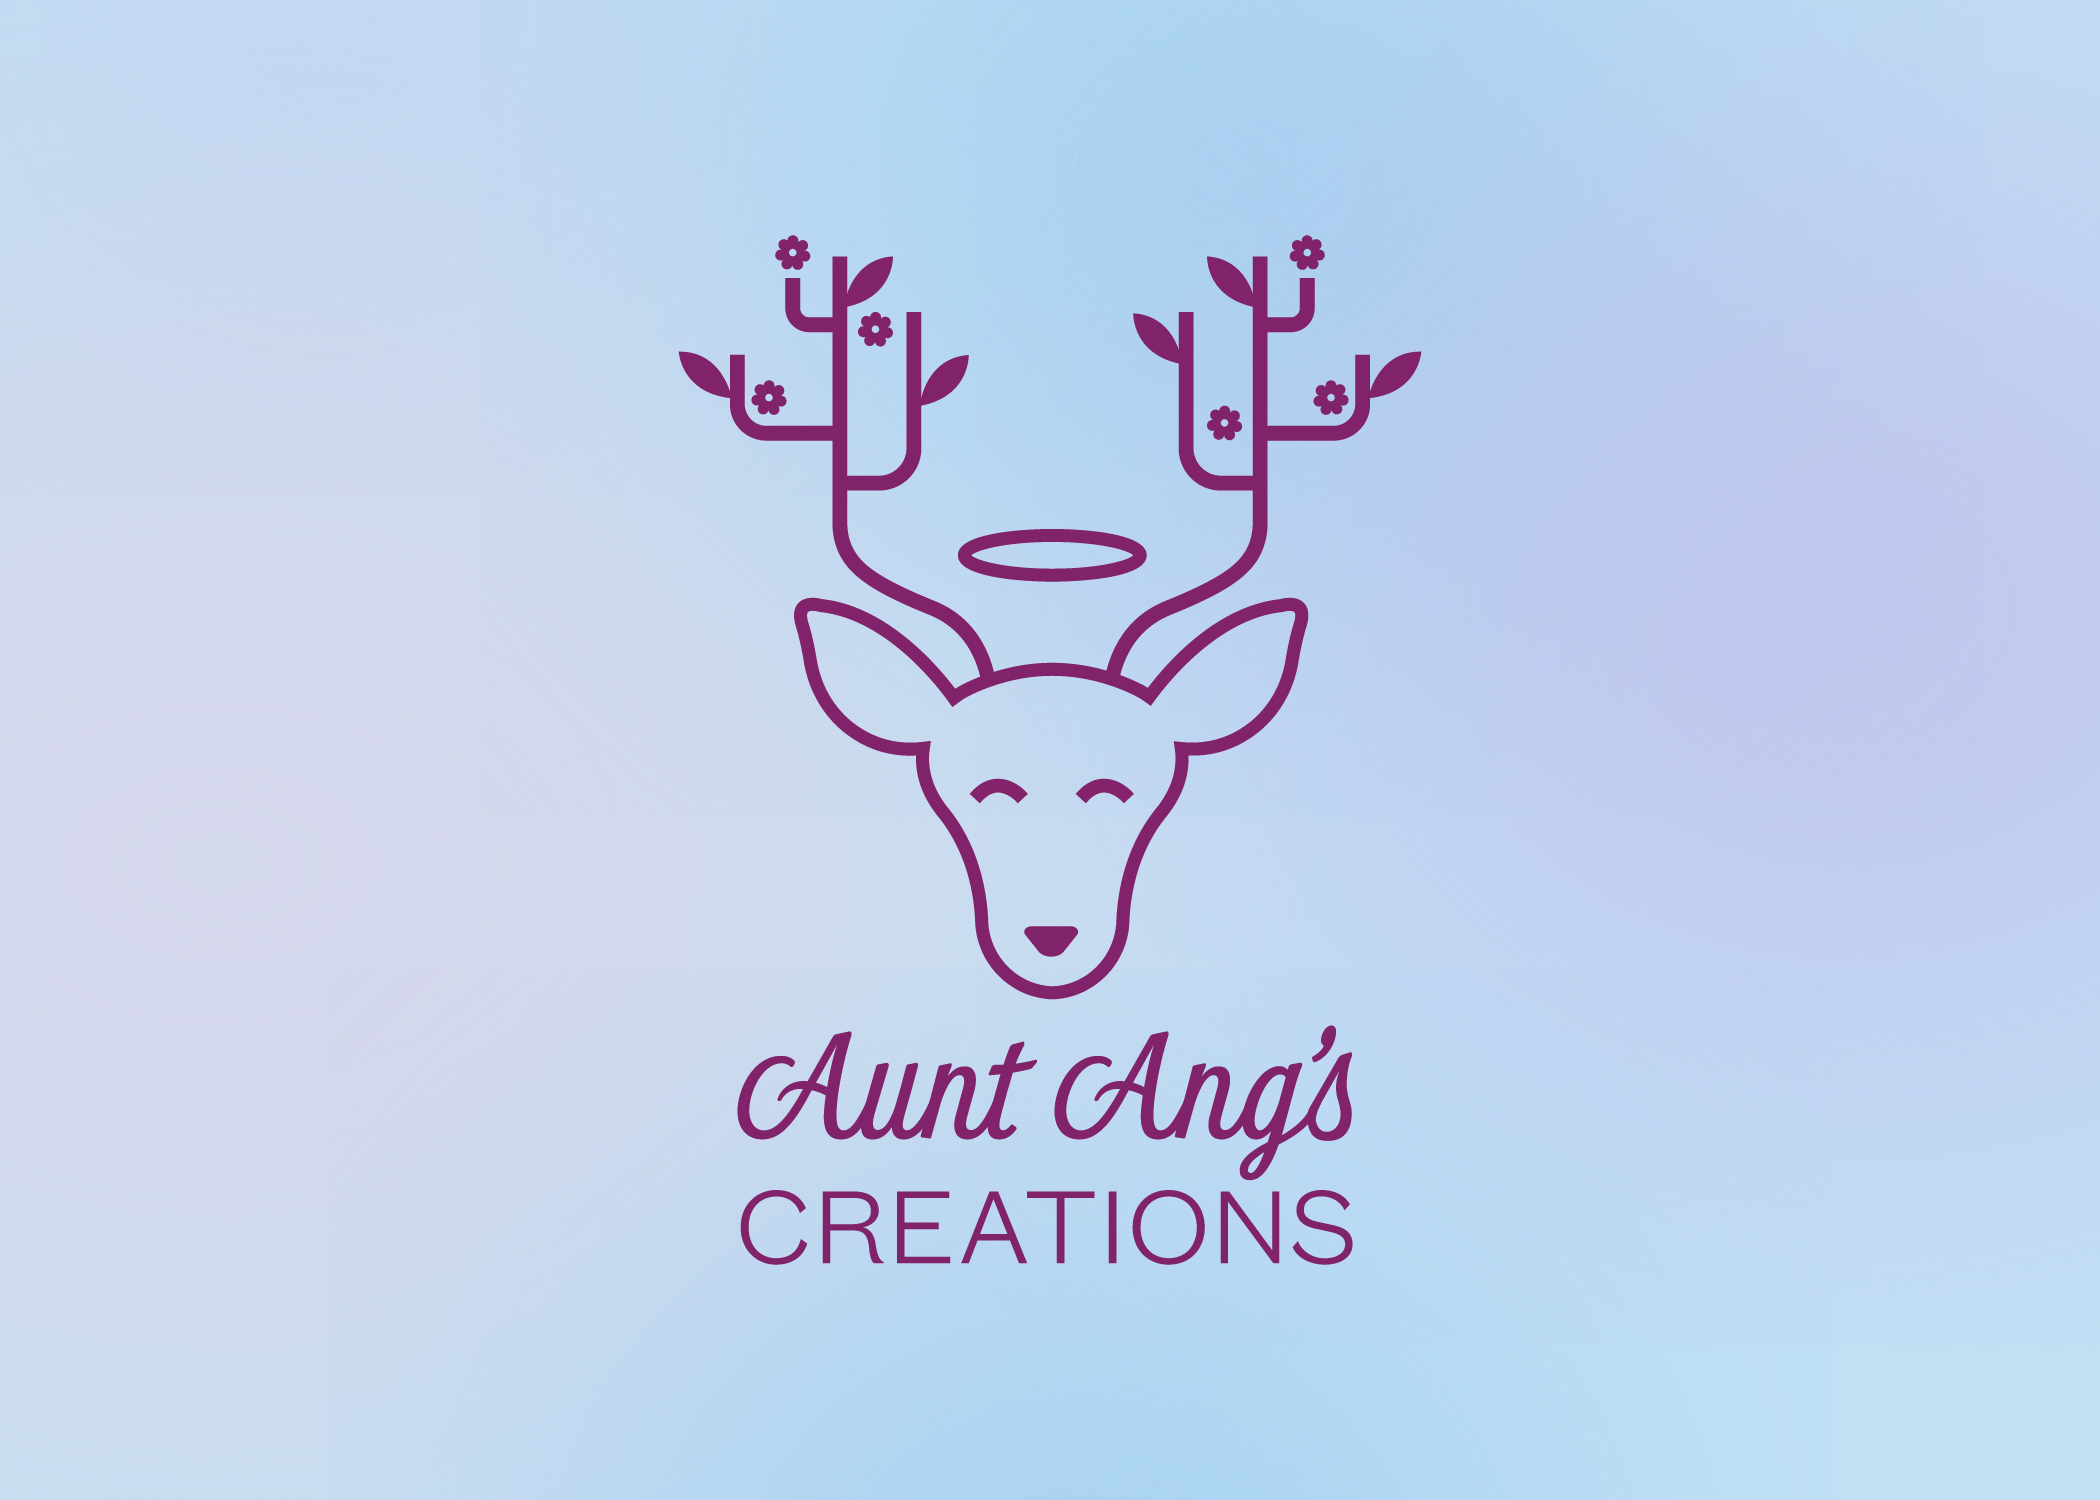 Aunt Ang's Creations logo, which features a deer with flowers and leaves on its antlers. It is on a celestial blue  background with soft notes of pink and purple.